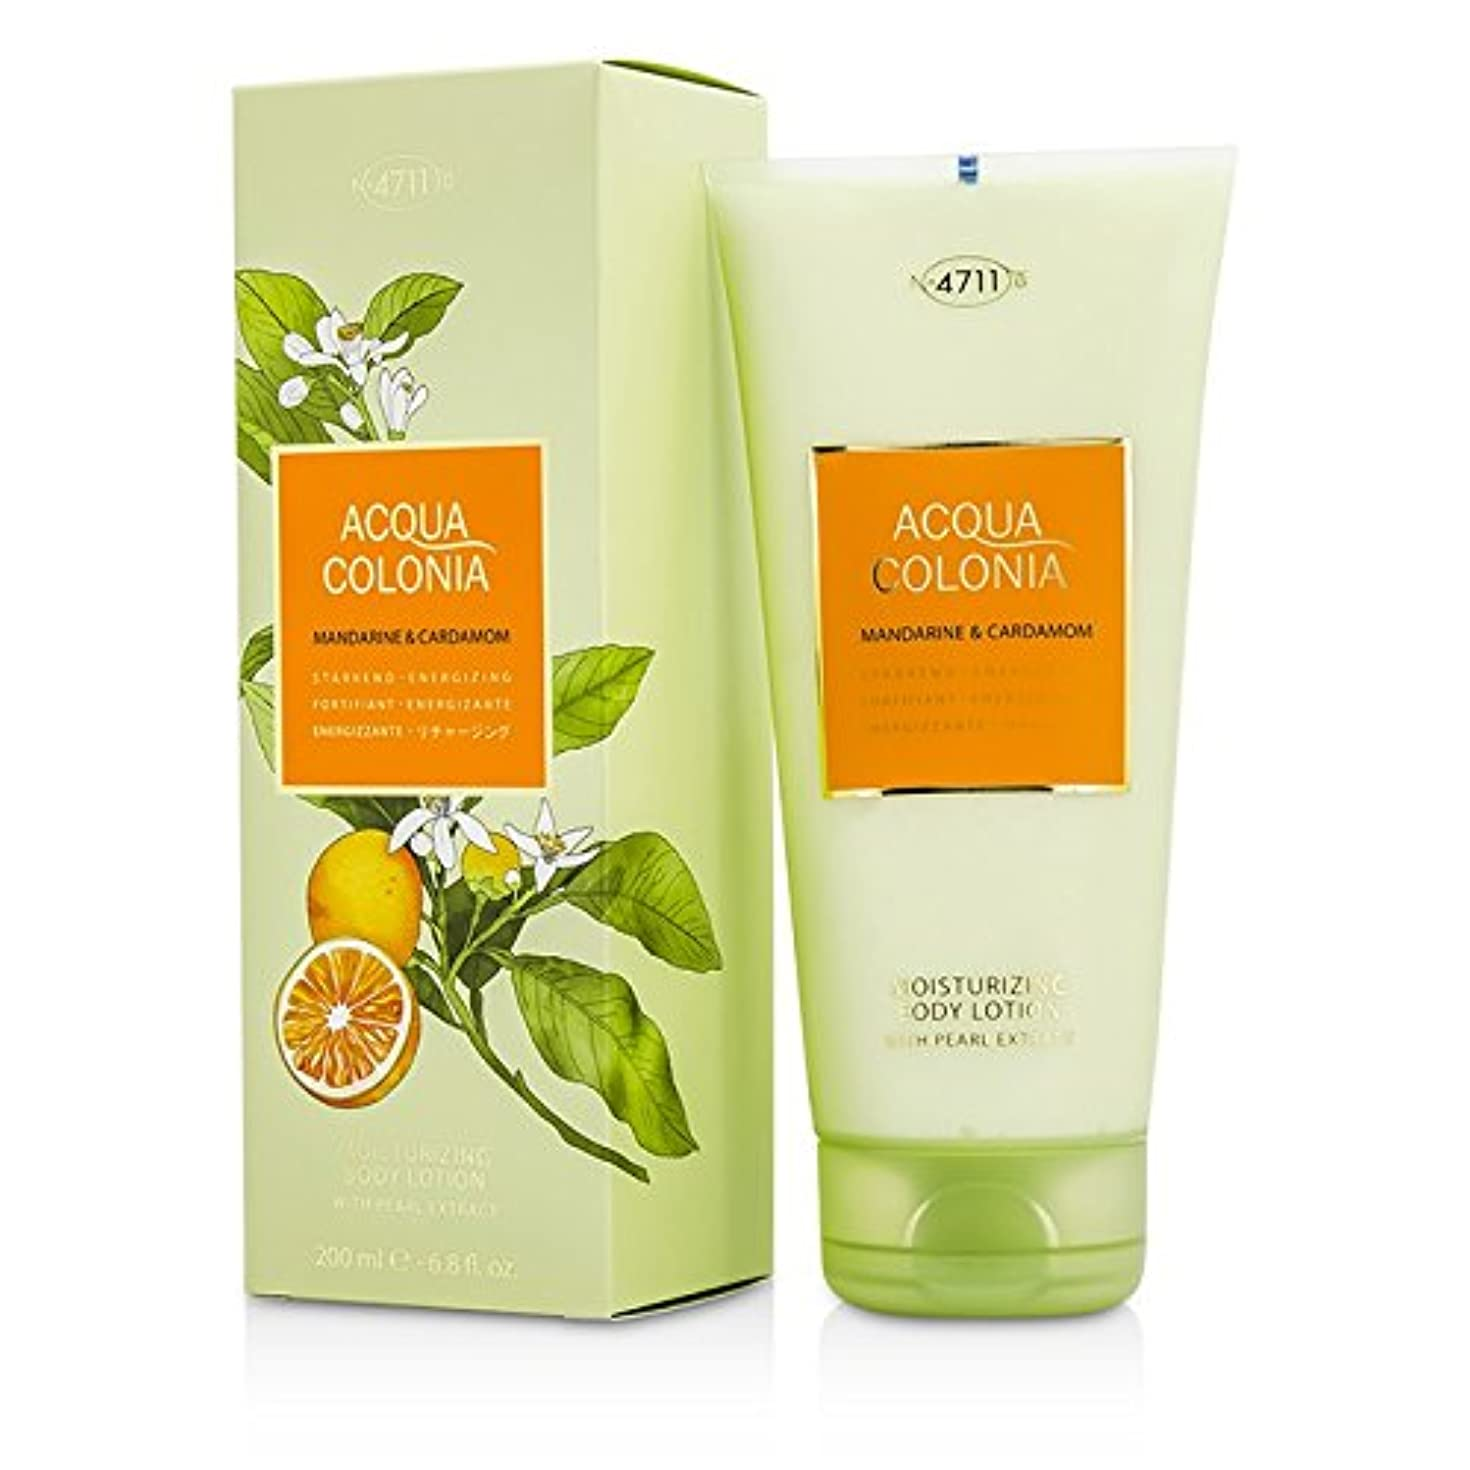 吹雪がっかりする担保4711 Acqua Colonia Mandarine & Cardamom Moisturizing Body Lotion 200ml/6.8oz並行輸入品